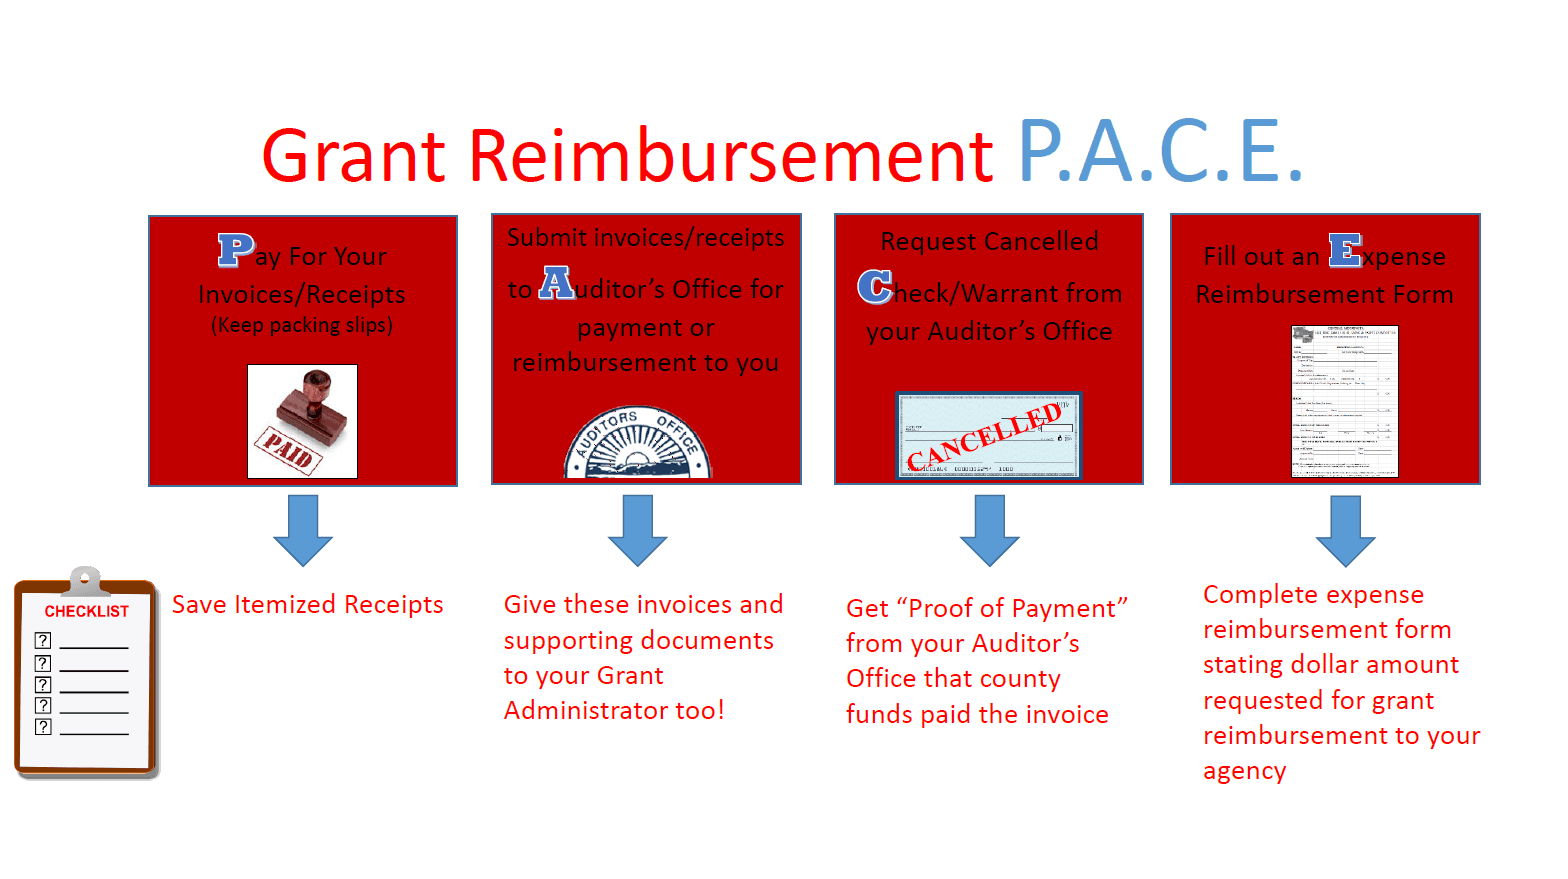 Grant Reimbursement P.A.C.E.